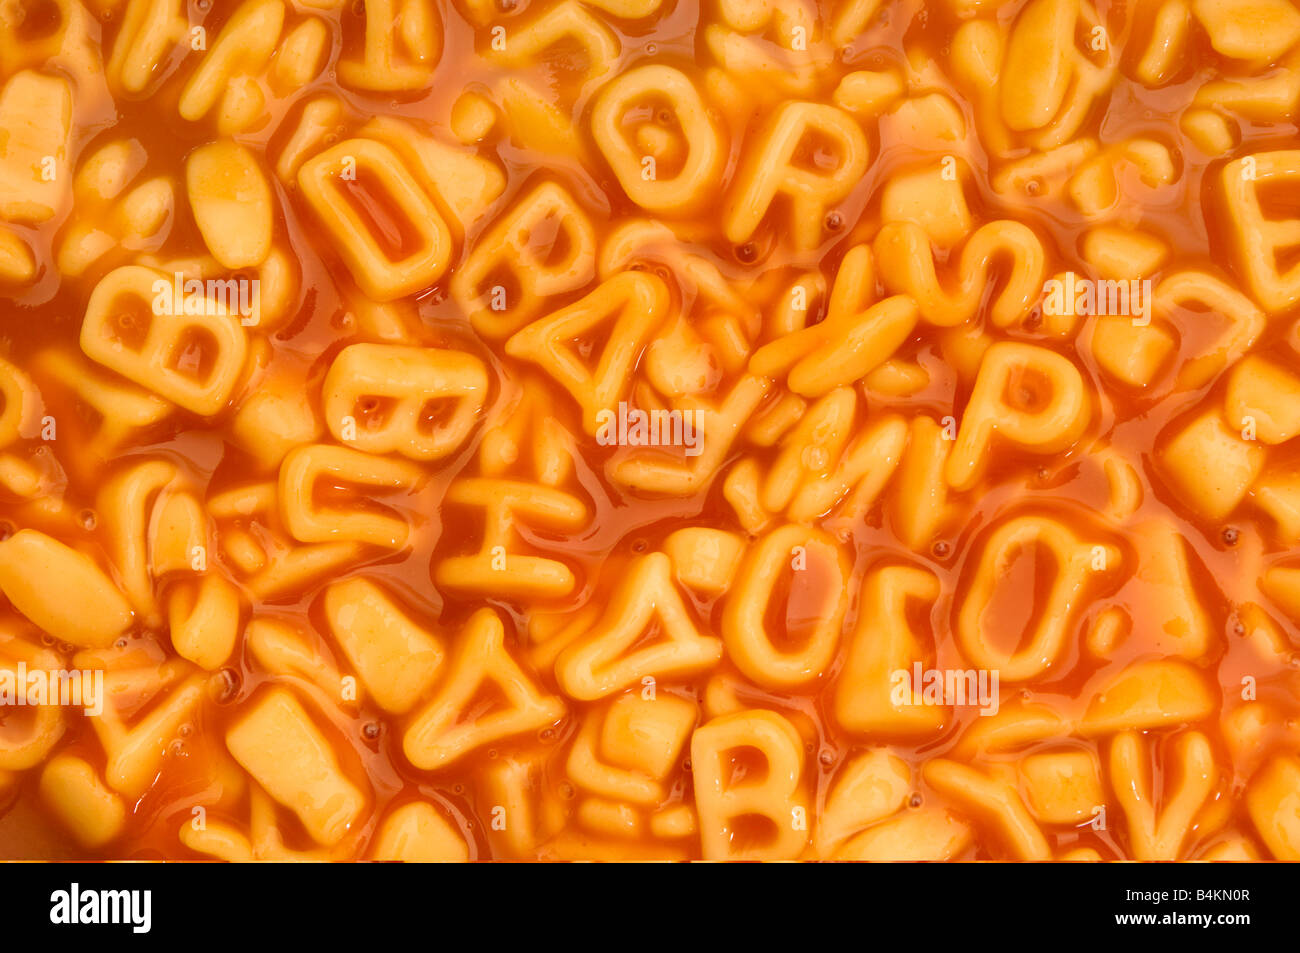 a background of alphabet spaghetti - Stock Image